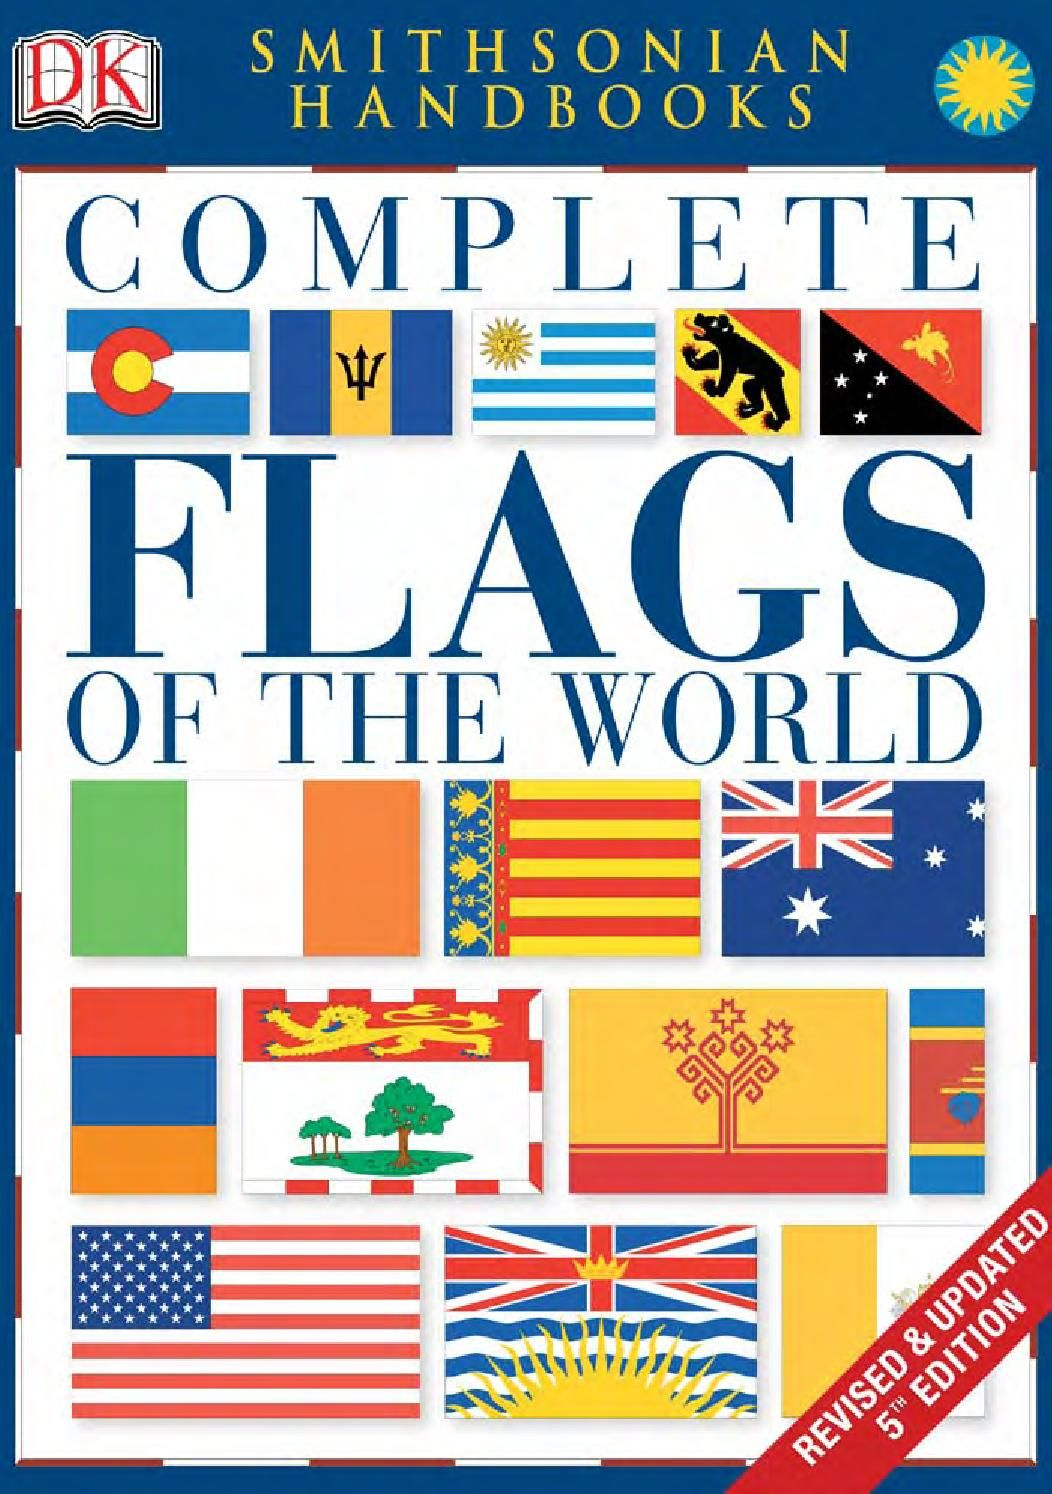 Dk complete flags of the world book about all flags of the